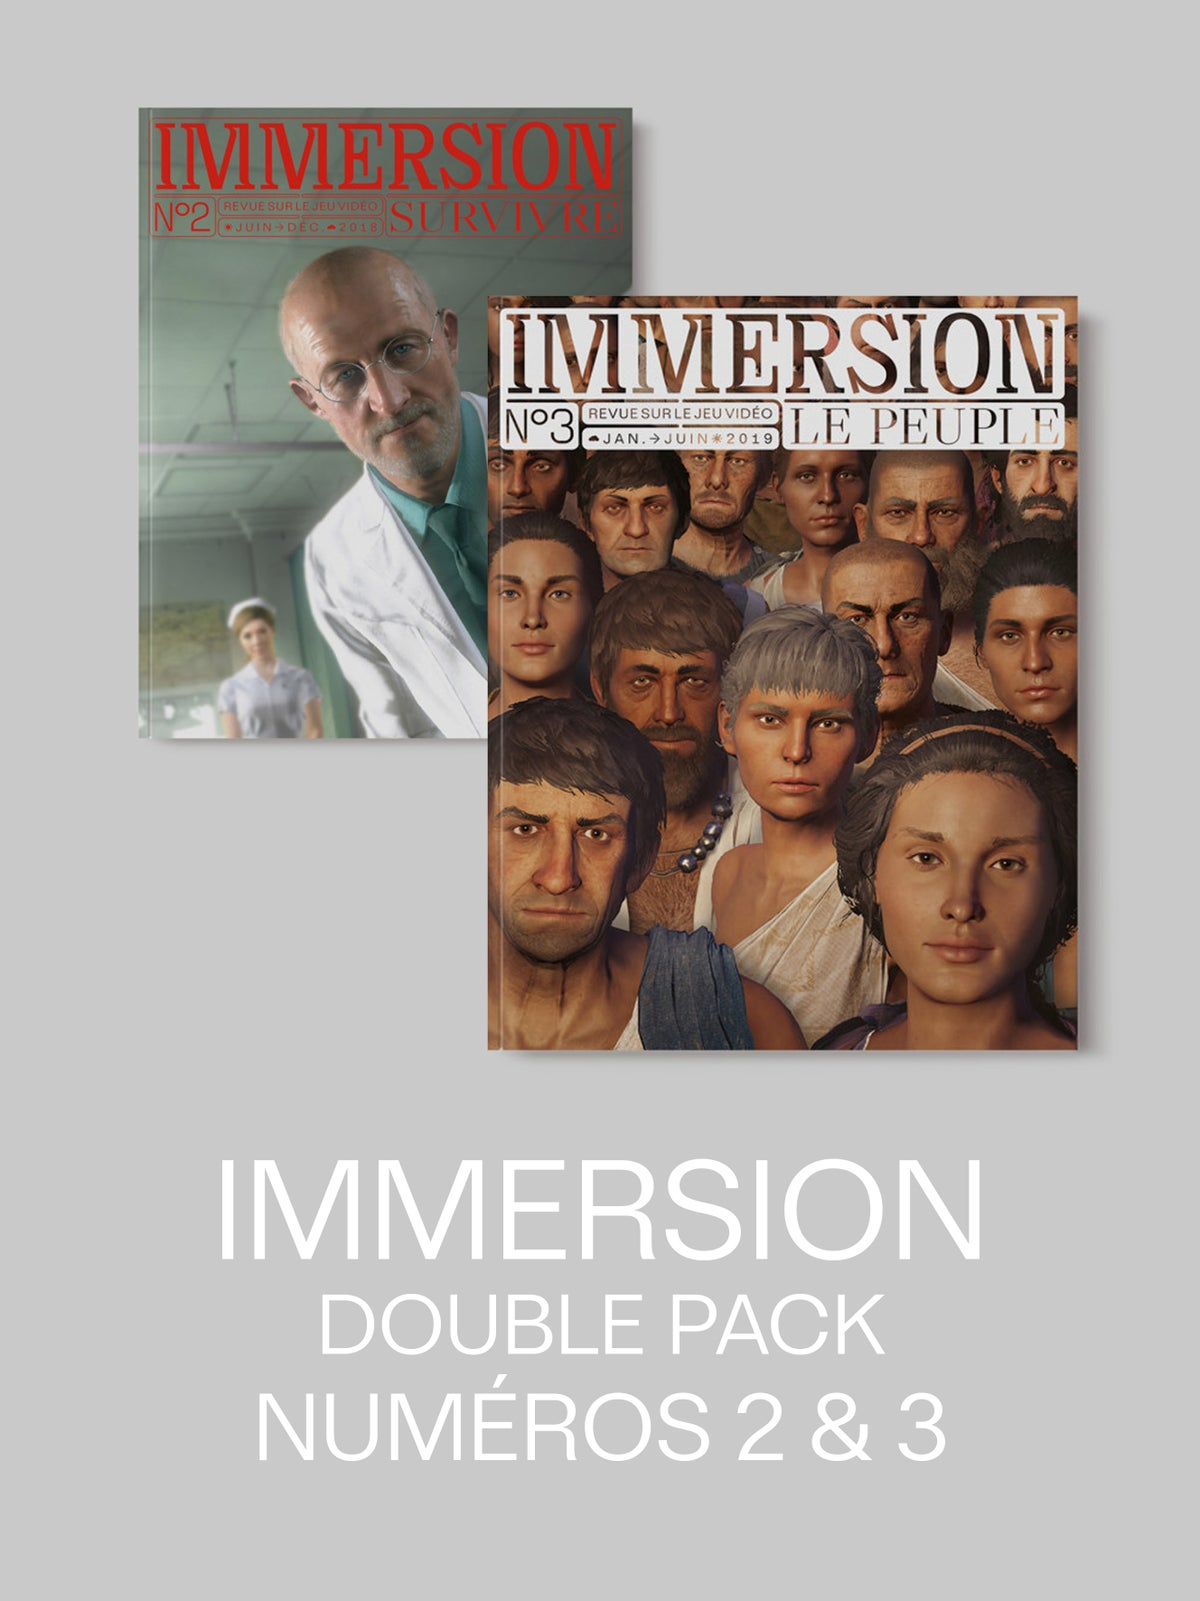 Image of IMMERSION DOUBLE PACK — 2 numéros